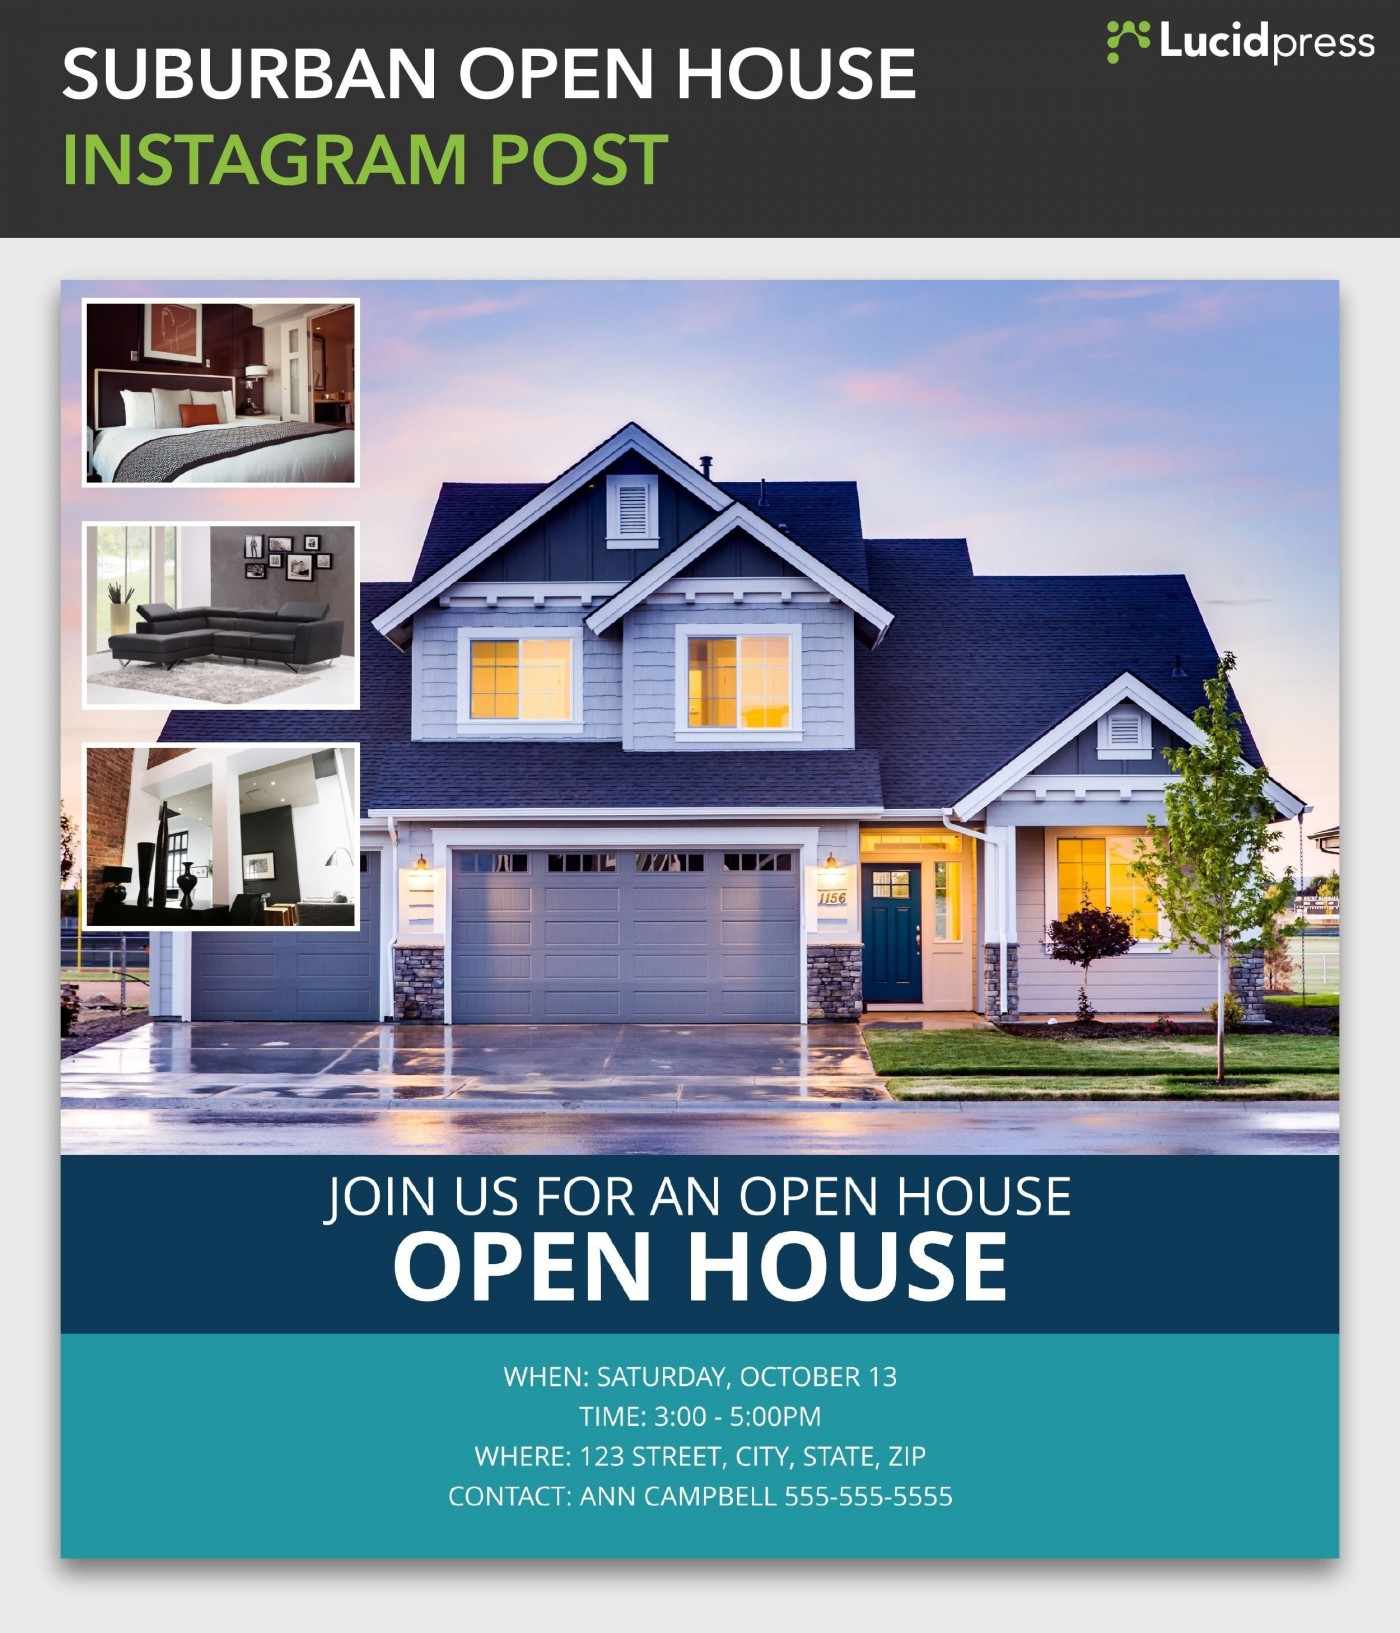 000 Dreaded Open House Flyer Template Word High Resolution  Free Microsoft1400